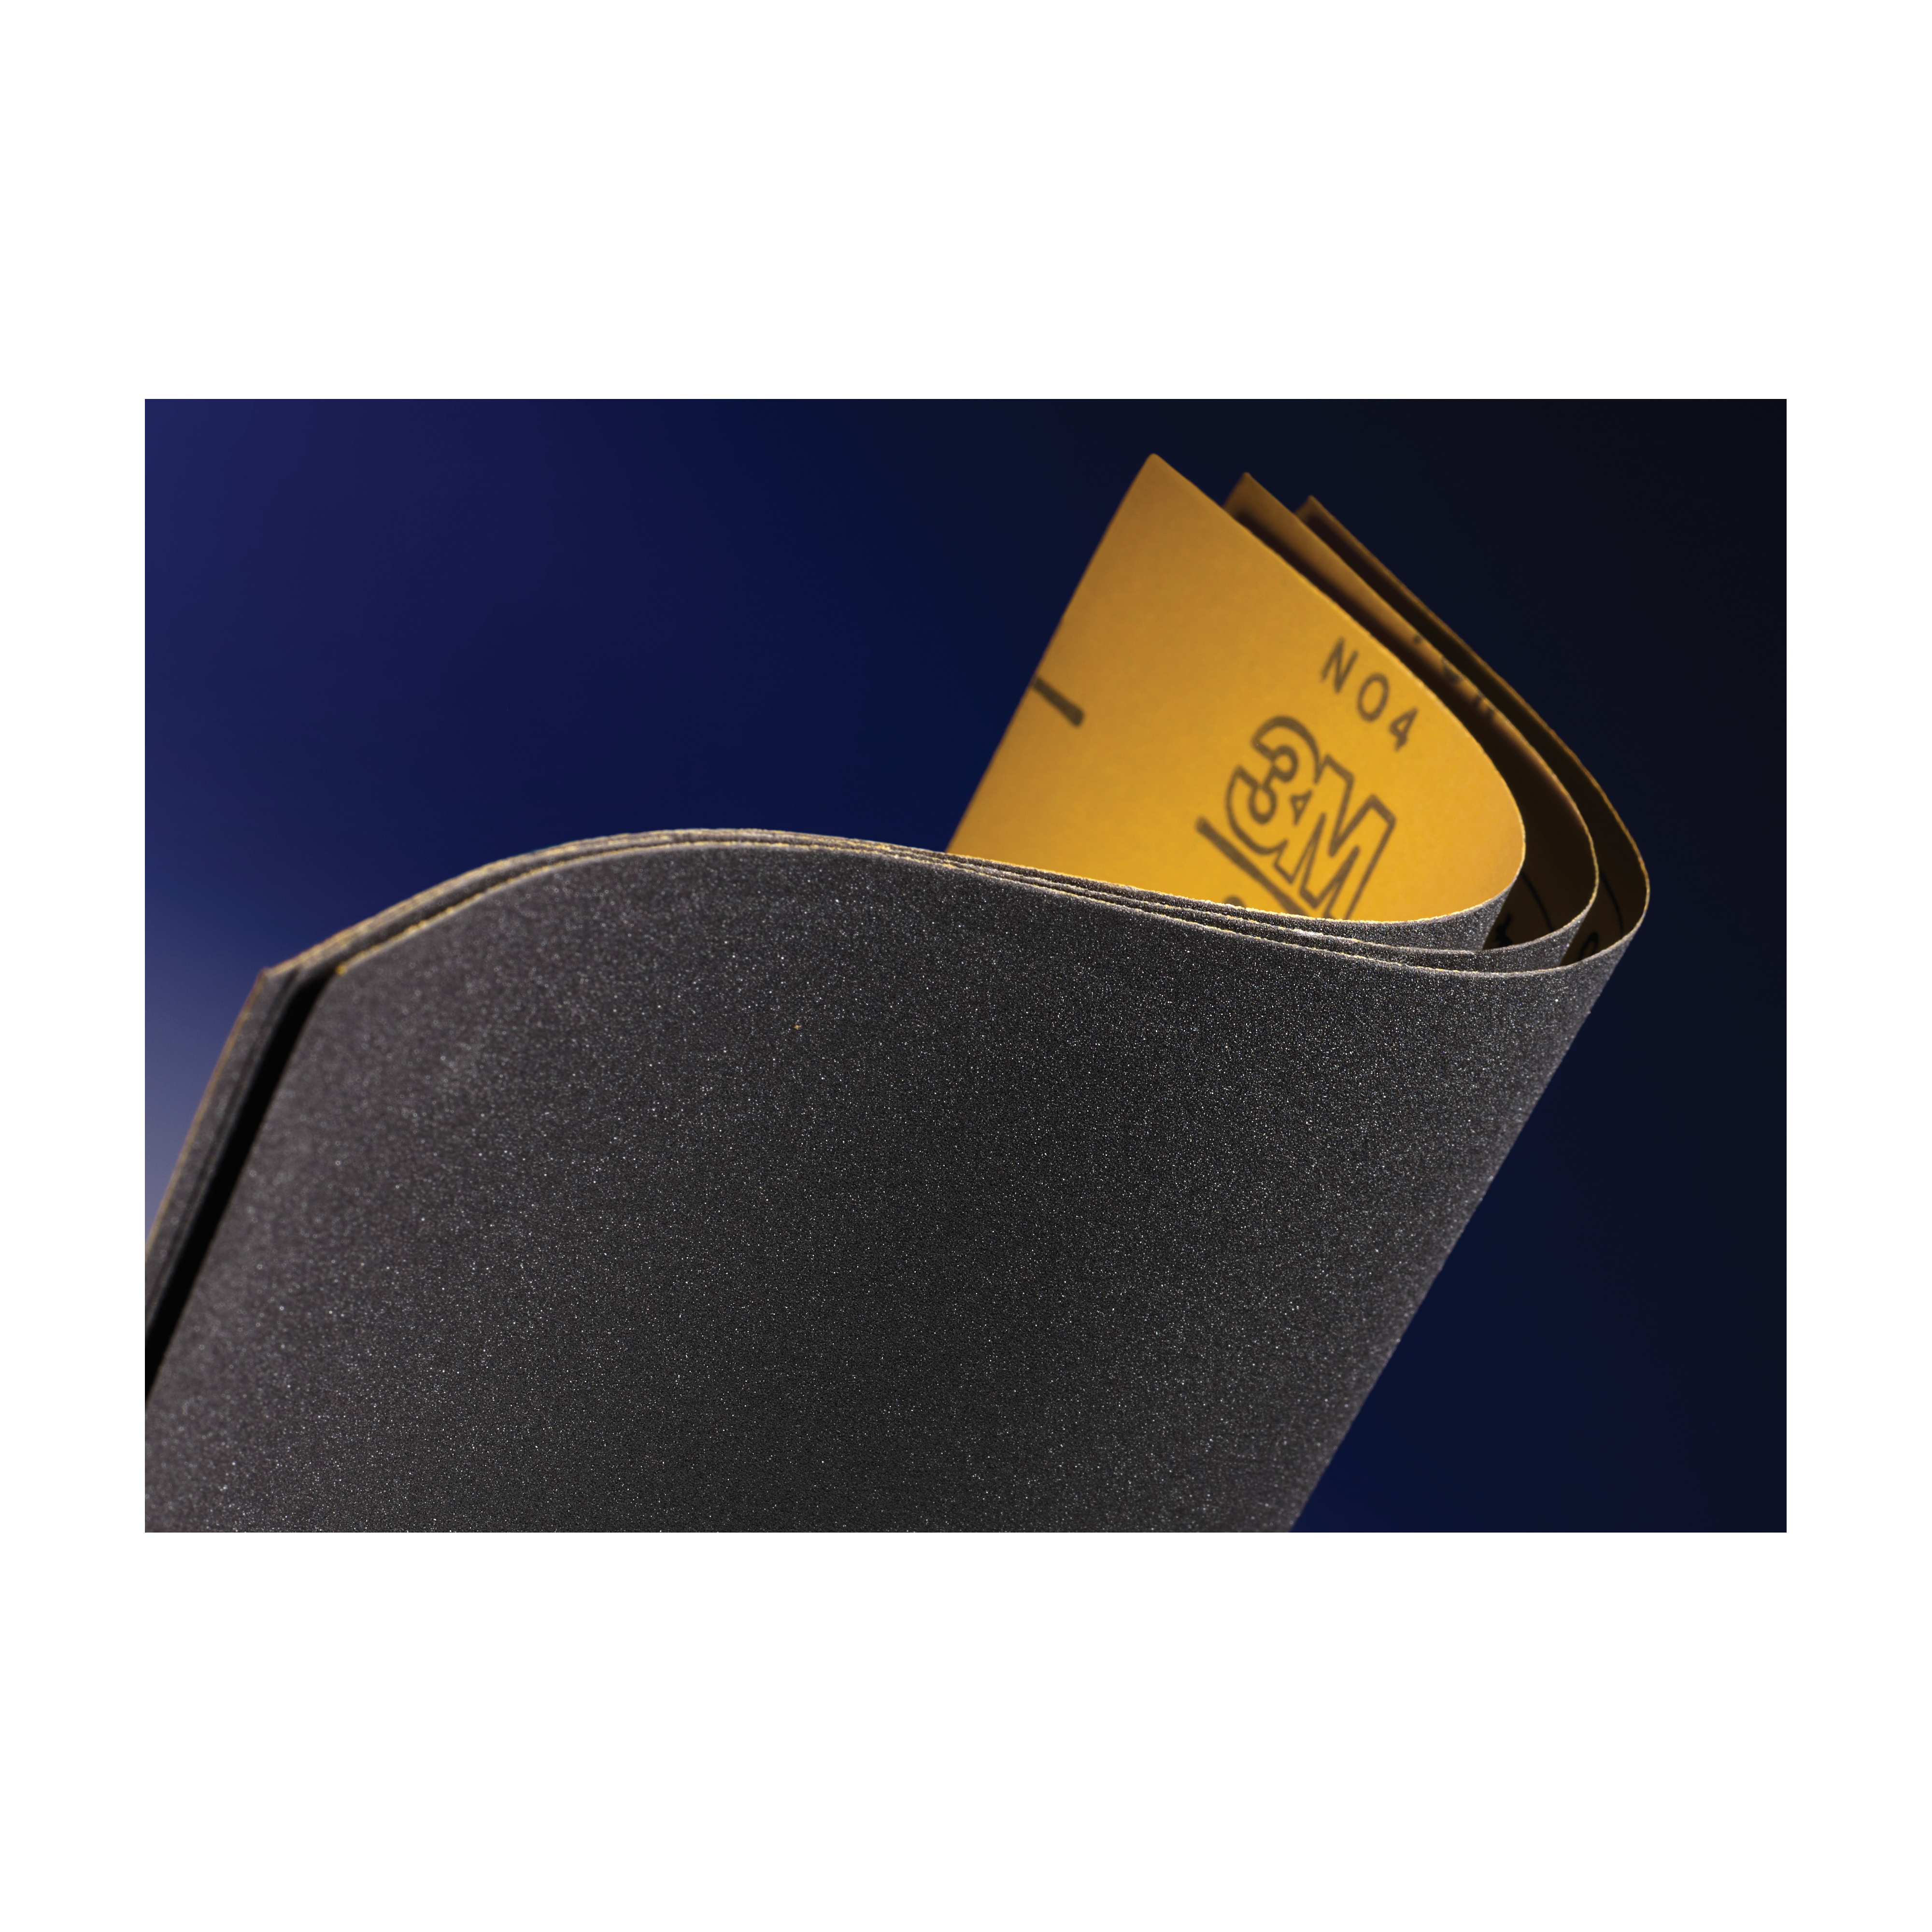 3M™ Wetordry™ 051144-14944 401Q Coated Sanding Sheet, 9 in L x 3-2/3 in W, 1000 Grit, Ultra Fine Grade, Silicon Carbide Abrasive, Paper Backing